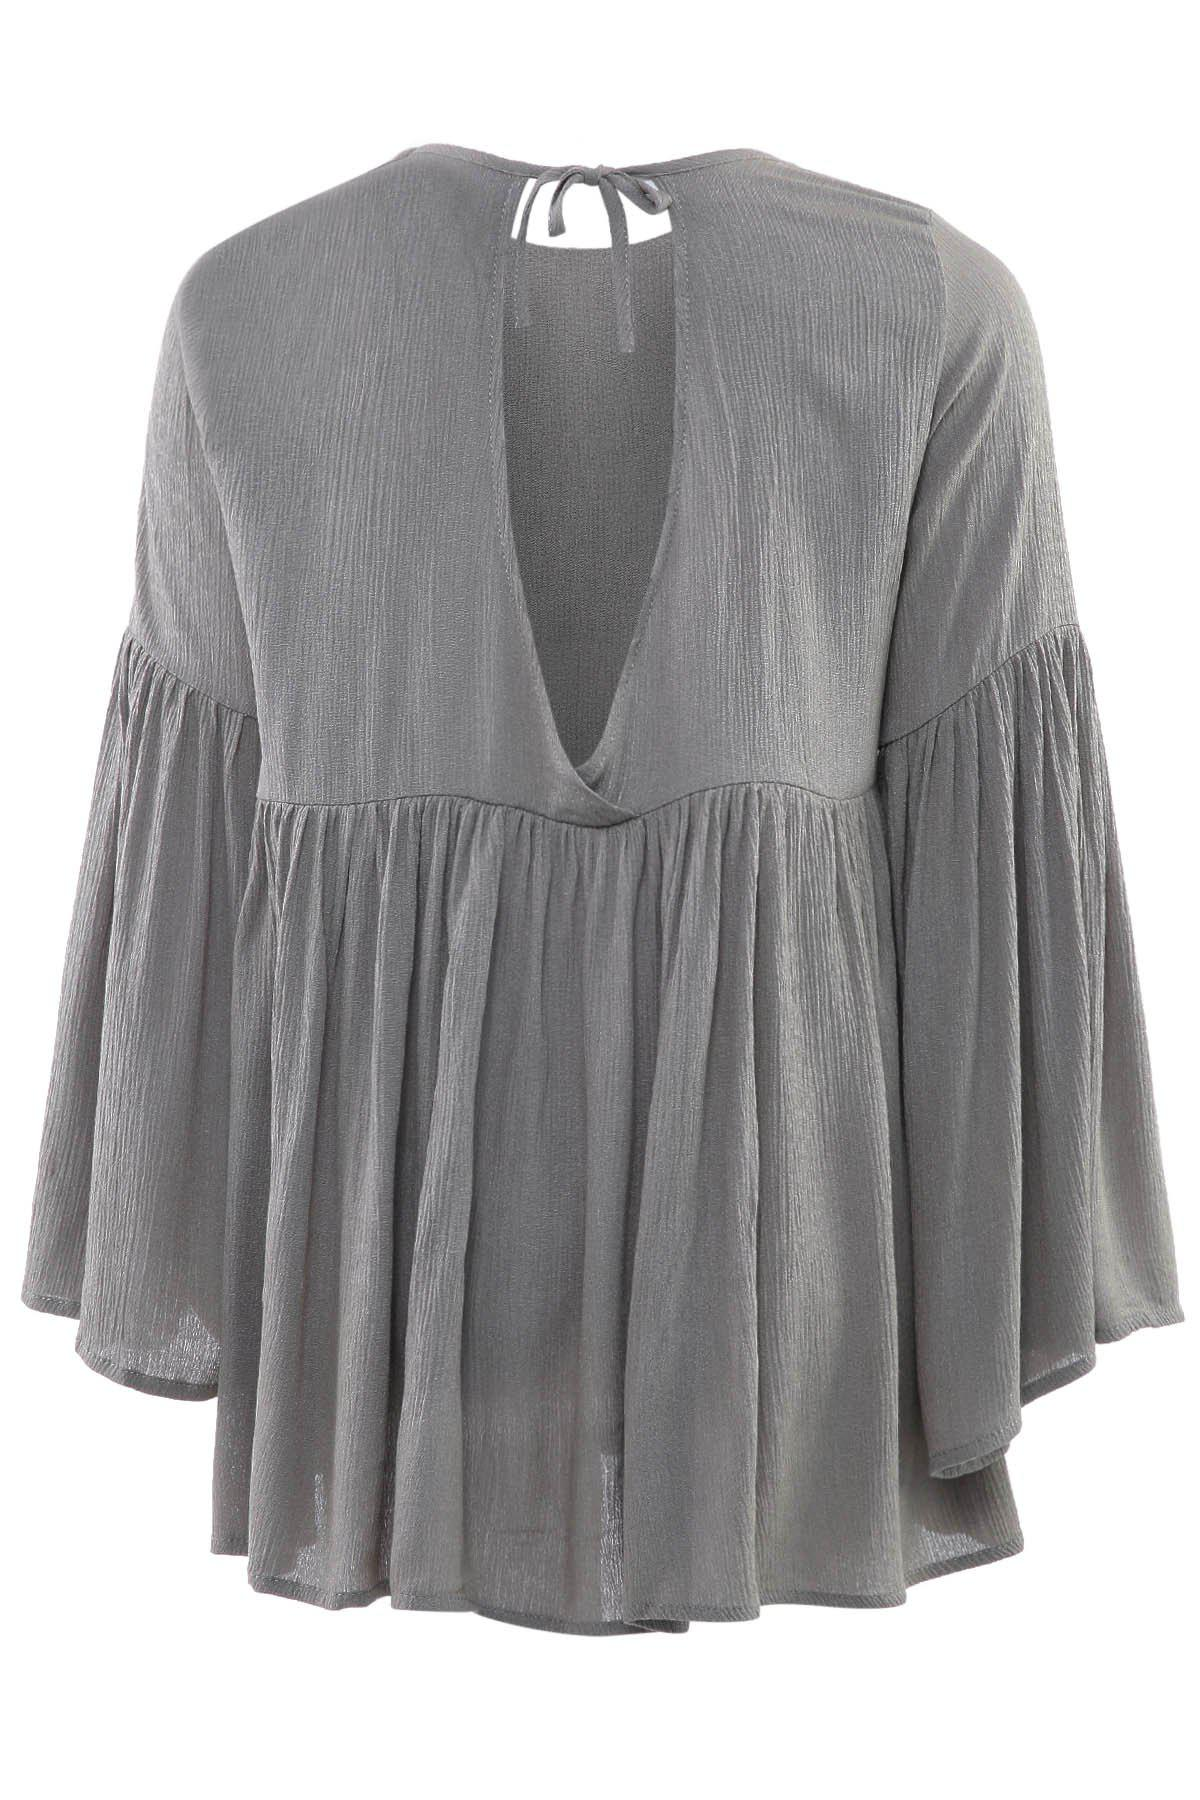 Fashionable Jewel Neck Ruffle Backless Long Sleeve Blouse For Women - AS THE PICTURE L